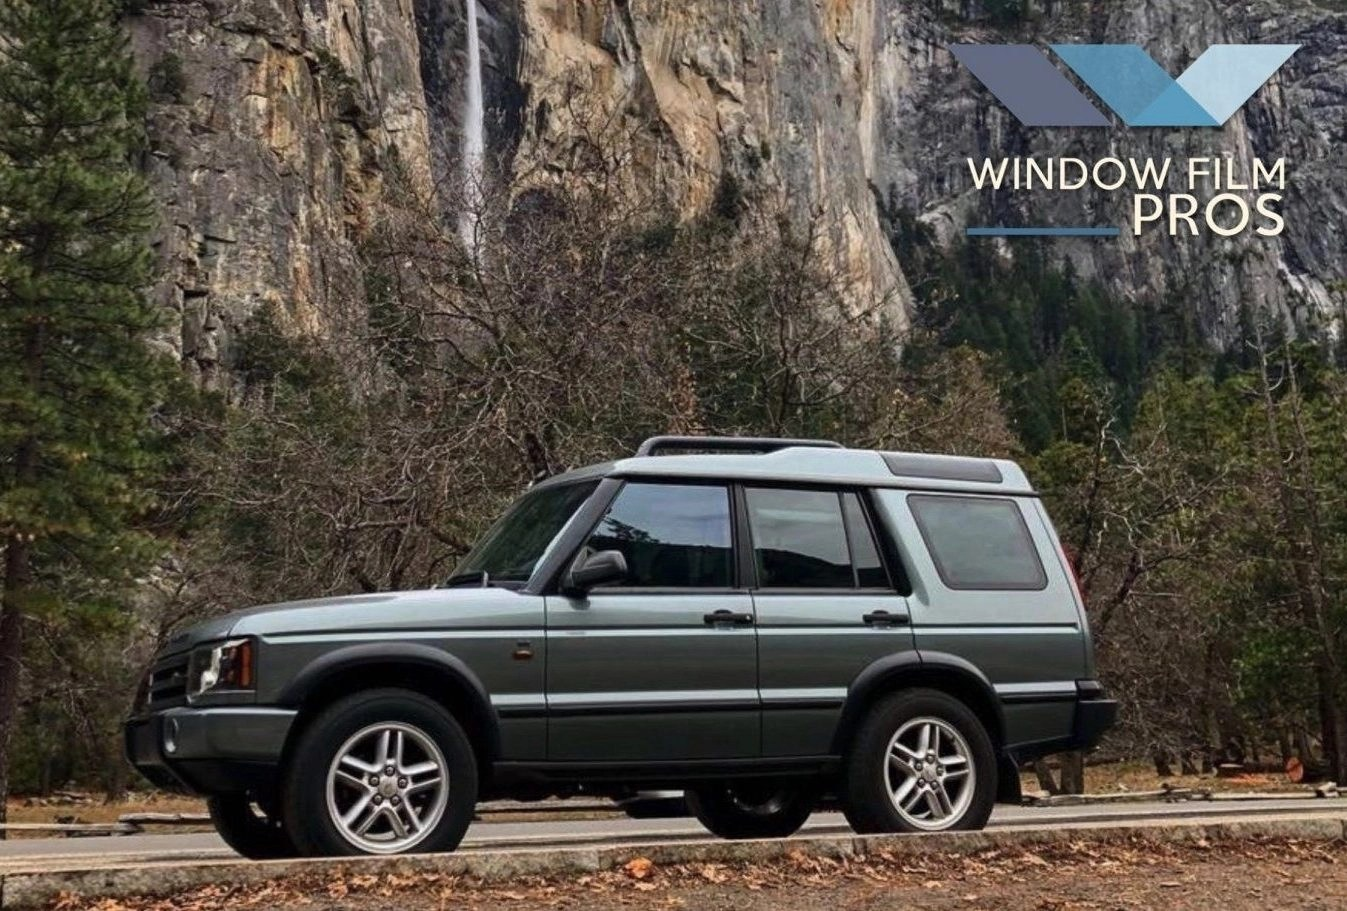 Considering Vehicle Window Tinting? Check Out These 5 Great Benefits - Window Film and Window Tint Education and Information